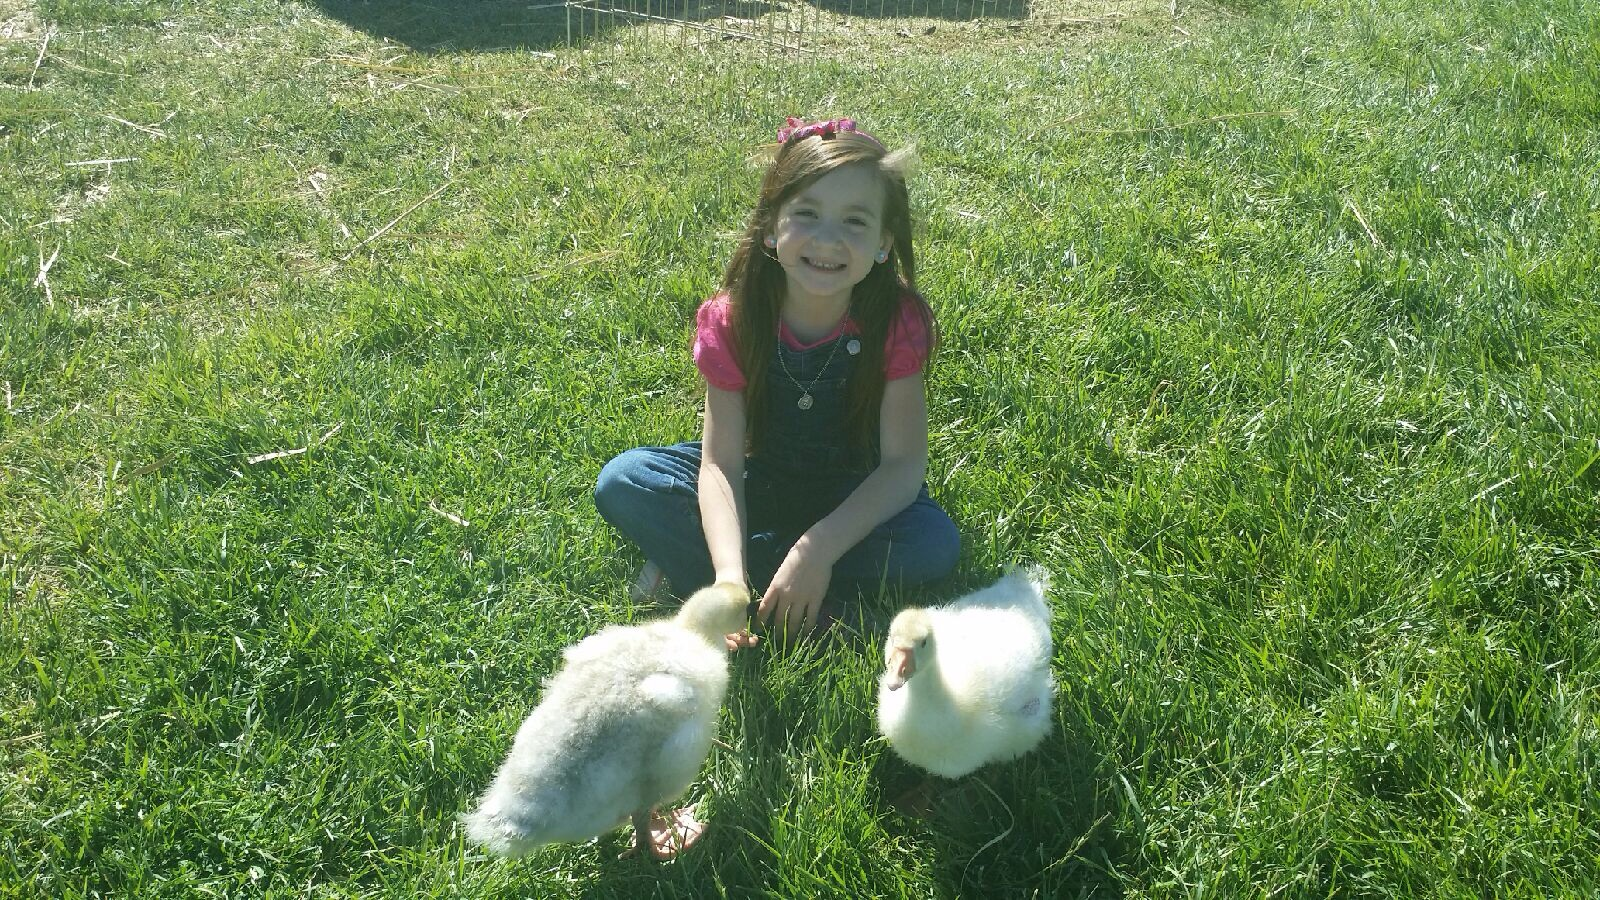 Ella rose and her goslings they are growing fast Ella asked her Mom if she could take them to school for show and tell